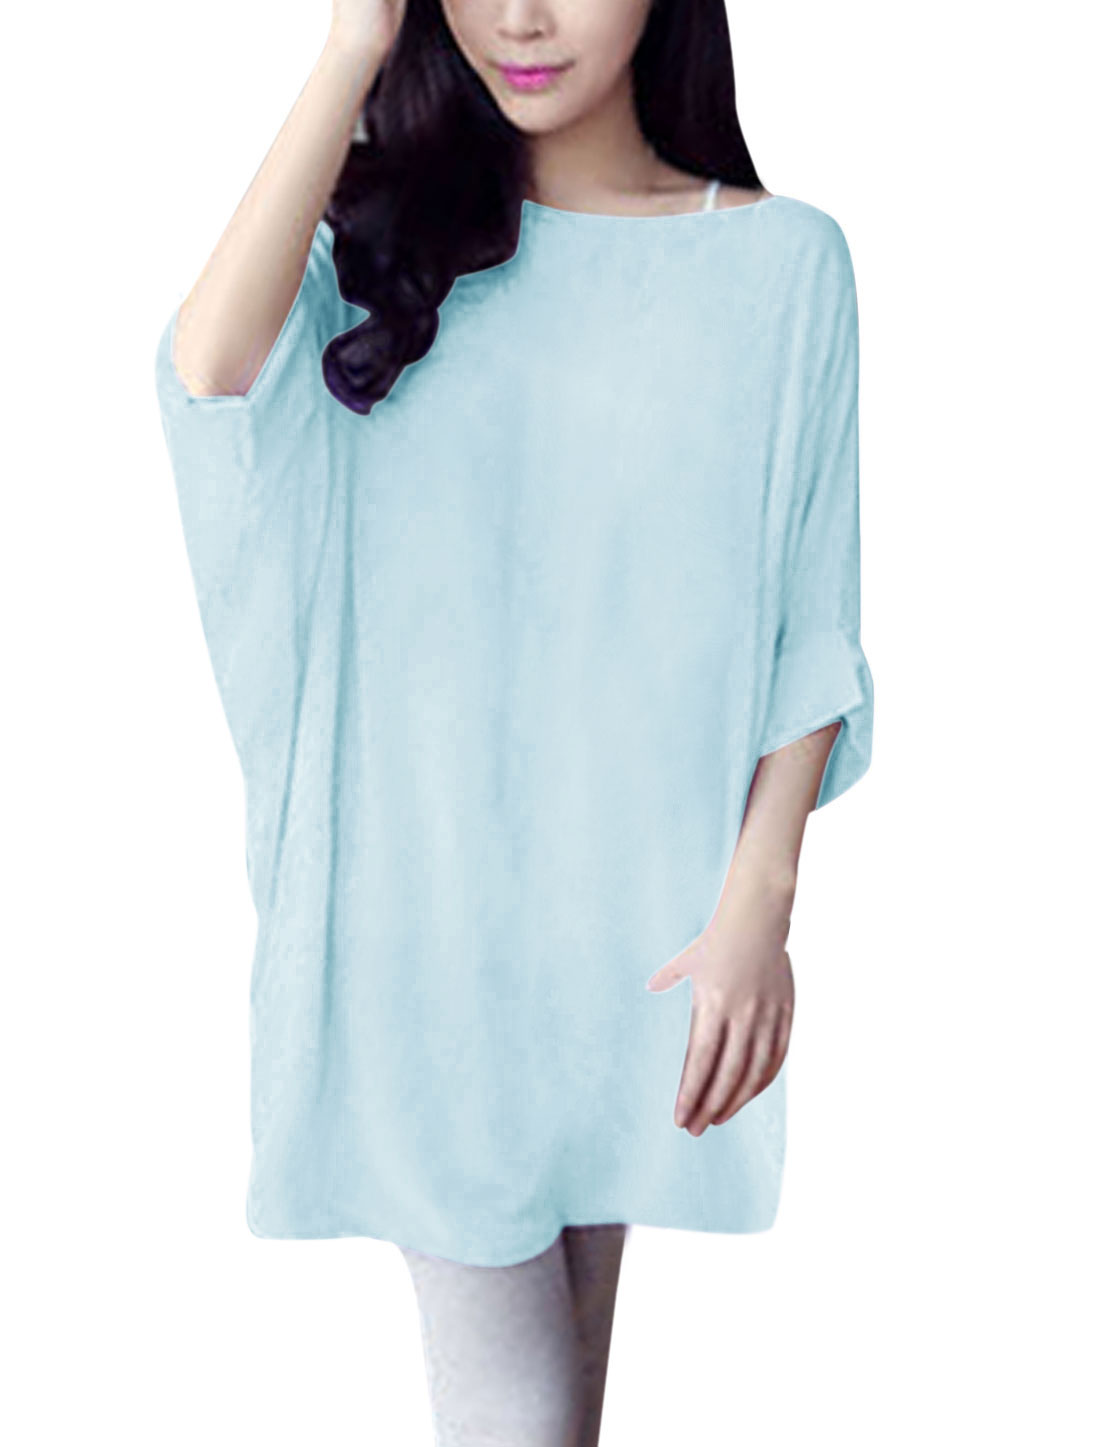 Ladies Summer Fit Semi Sheer Bat Sleeve Chiffon Blouse Light Blue S